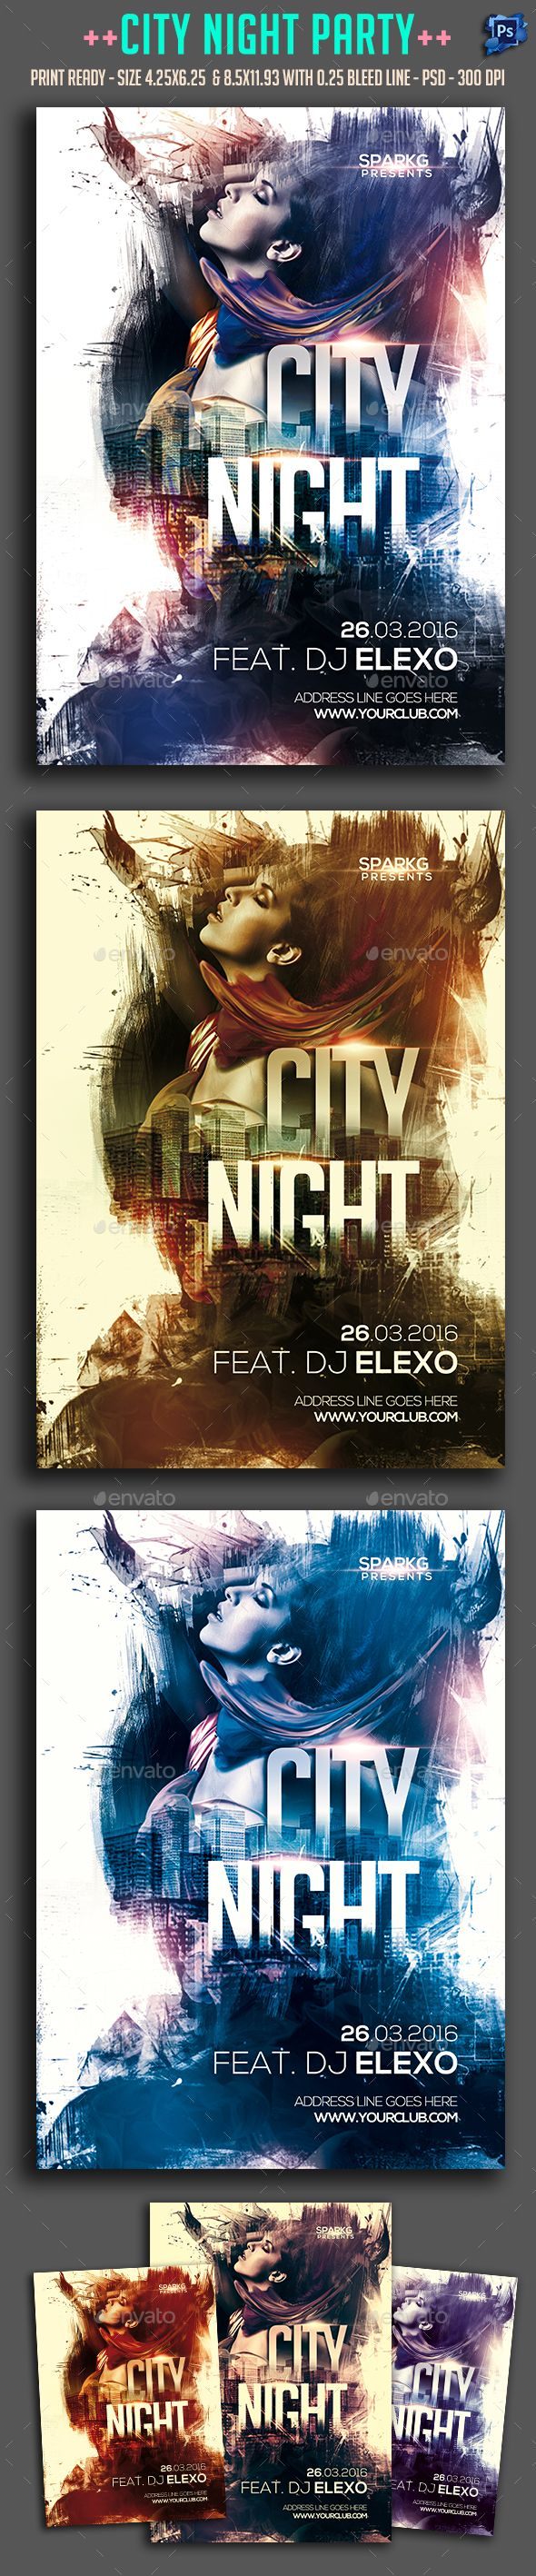 City Night Party Flyer Template PSD #design Download: http://graphicriver.net/item/city-night-party-flyer-/14134567?ref=ksioks